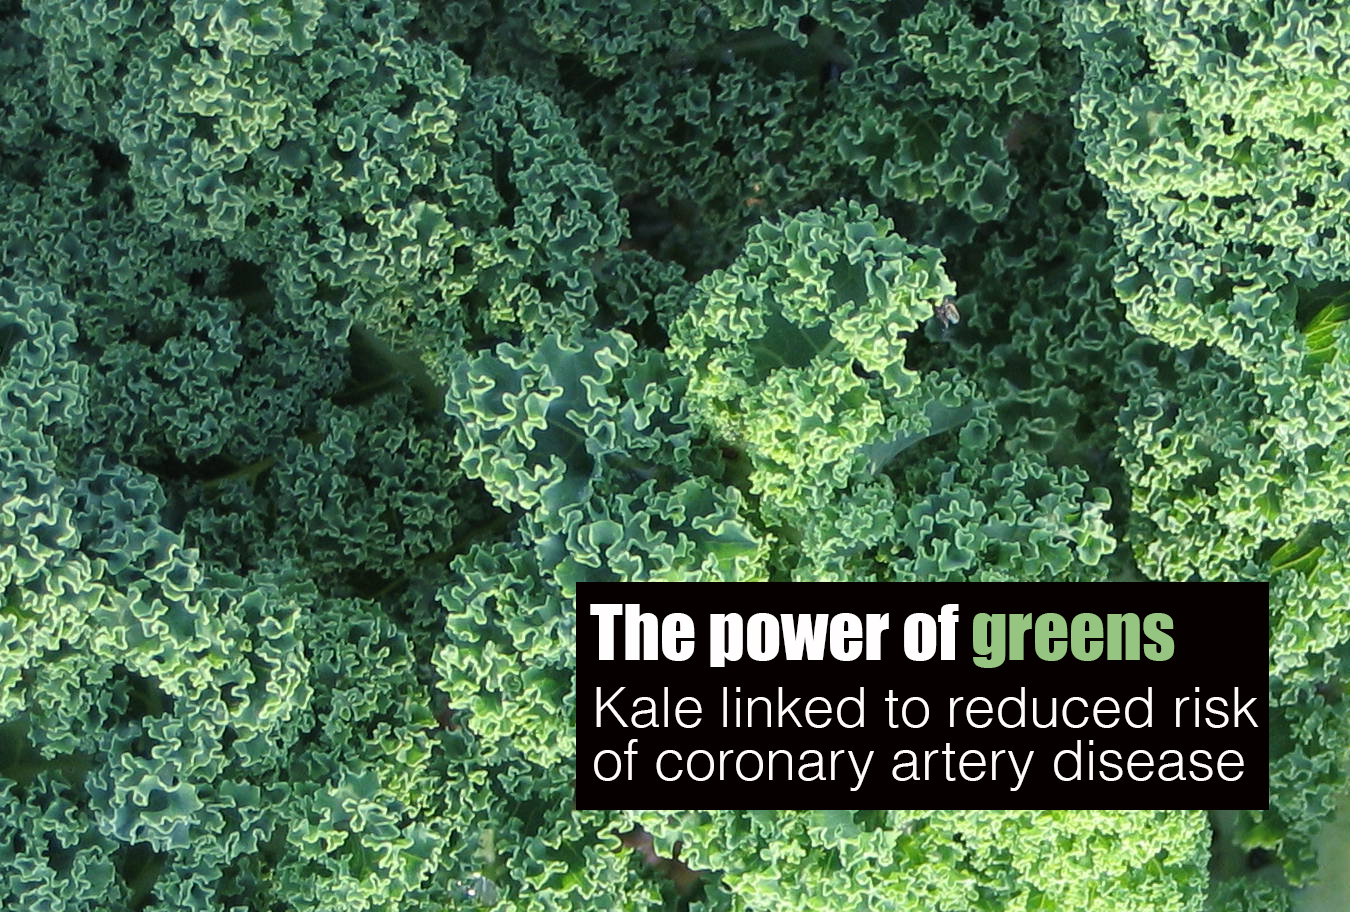 kale and disease